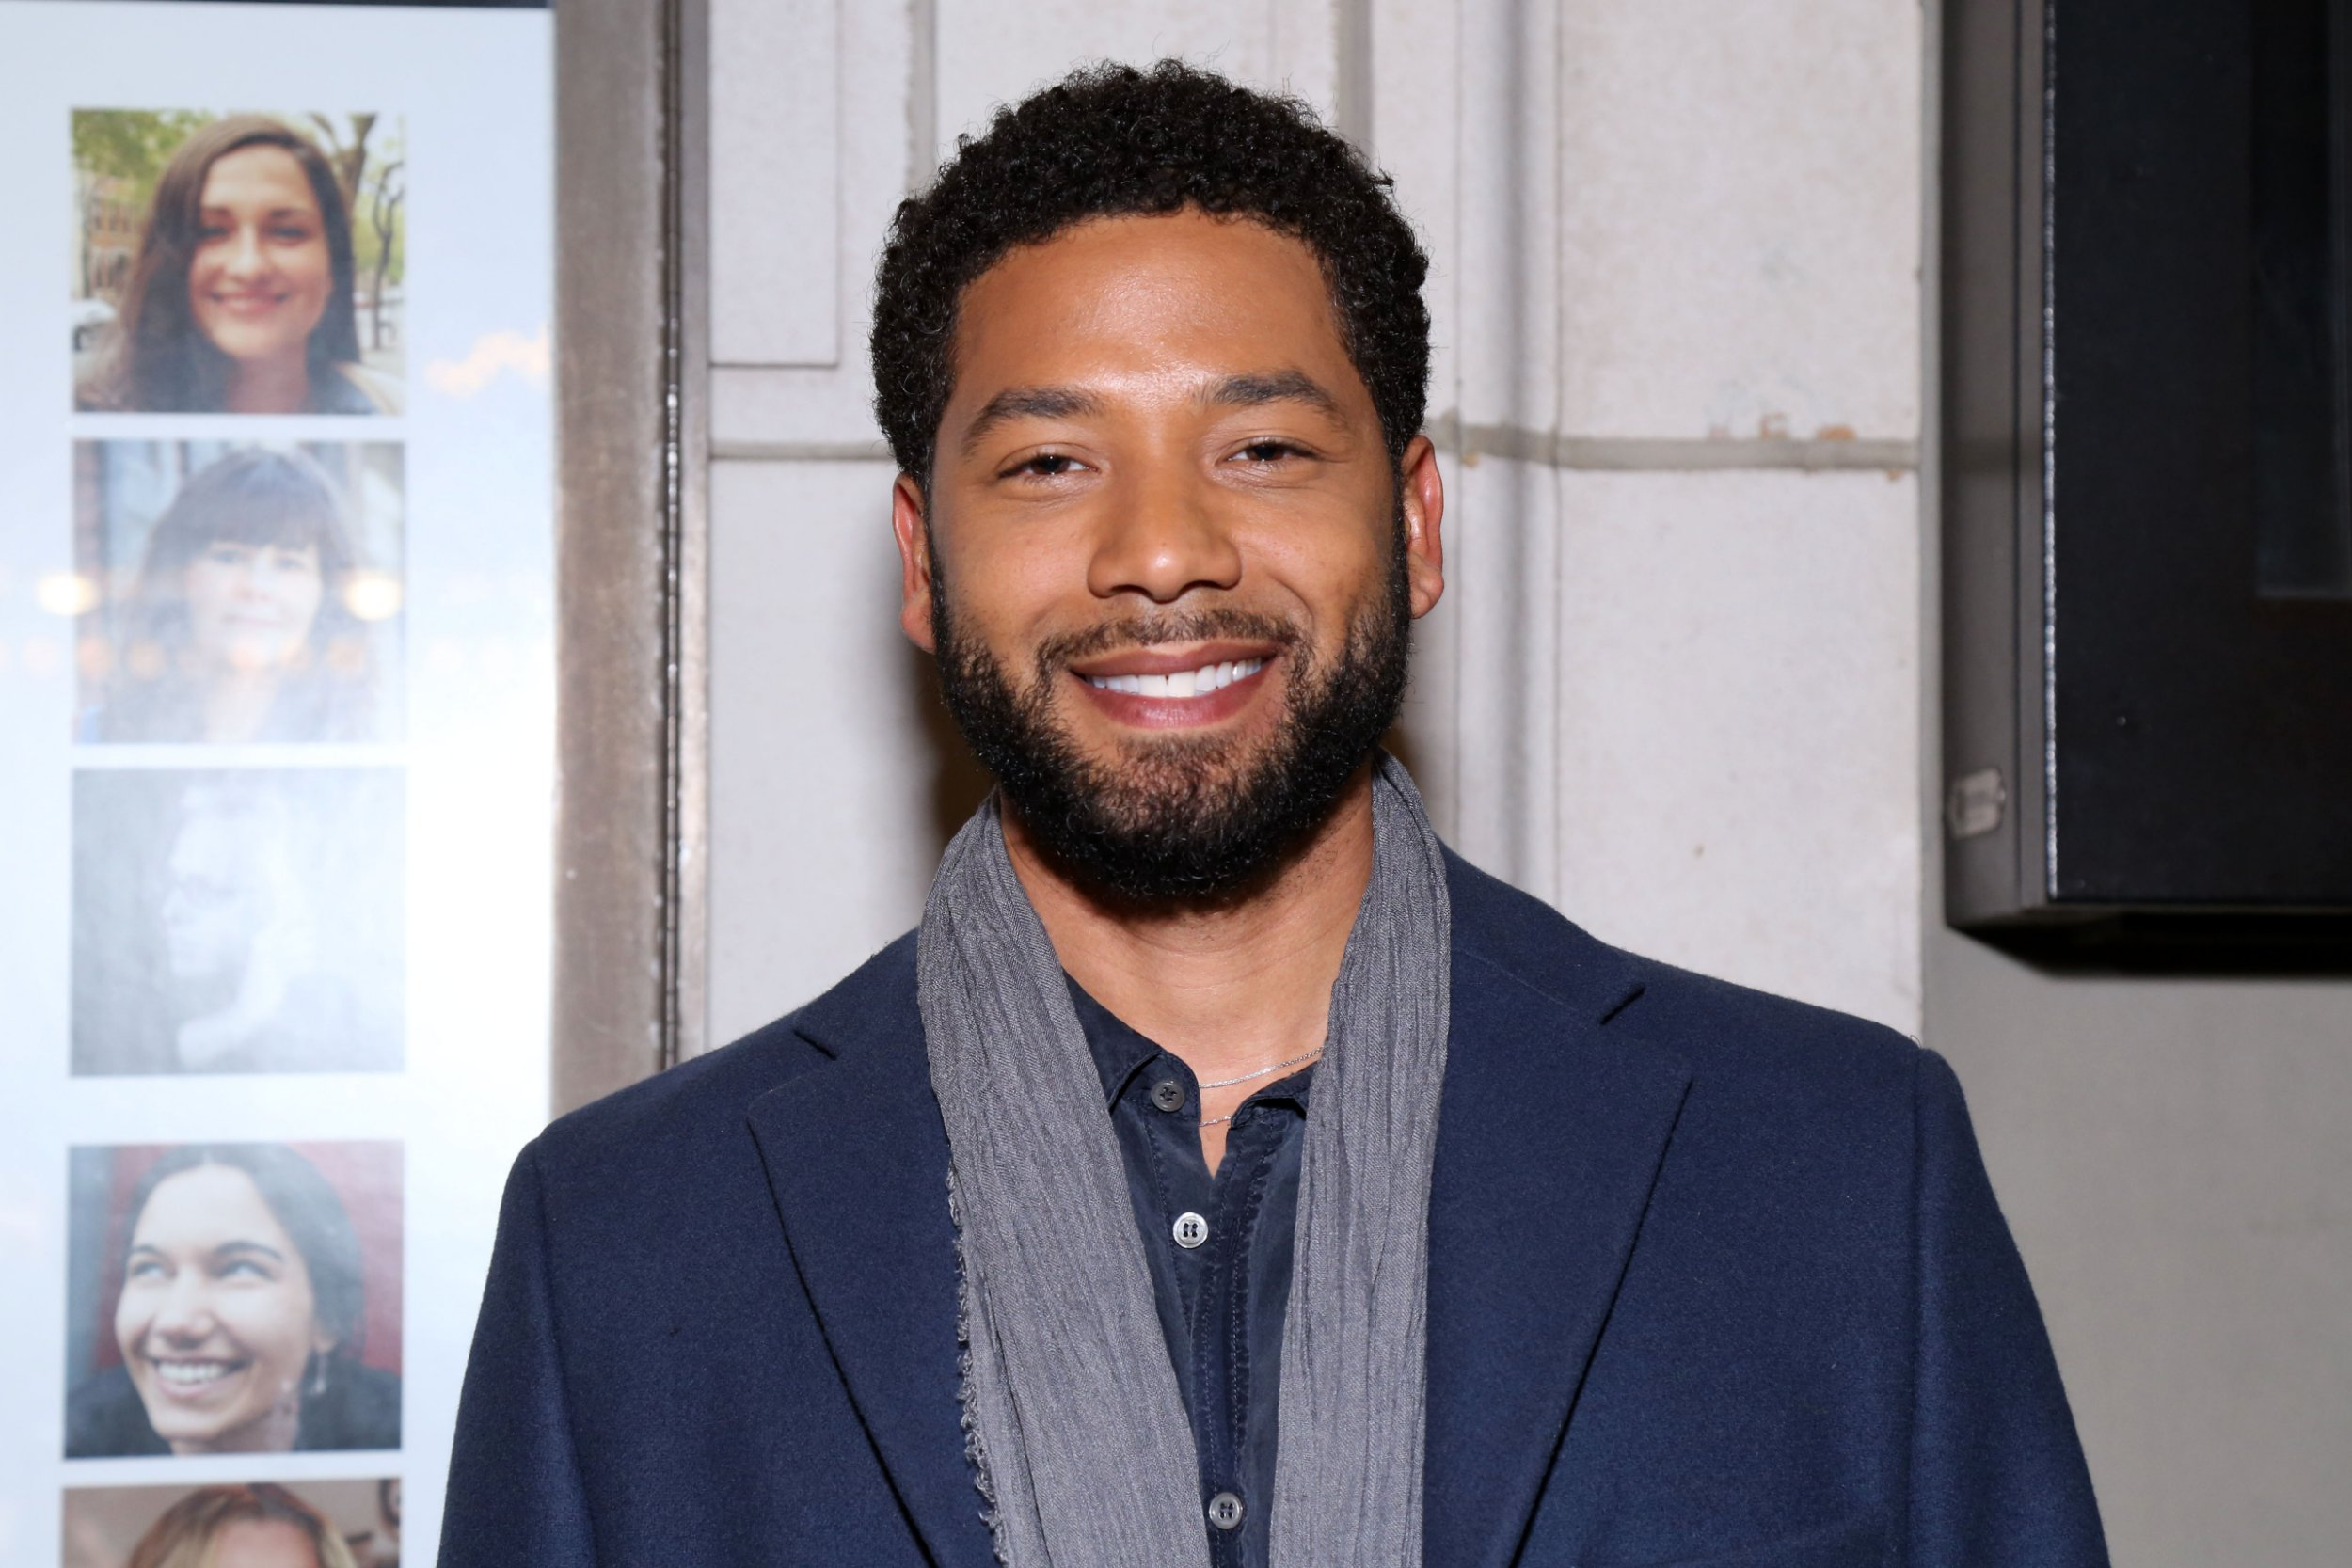 Jussie Smollett's Drop The Mic episode pulled following arrest